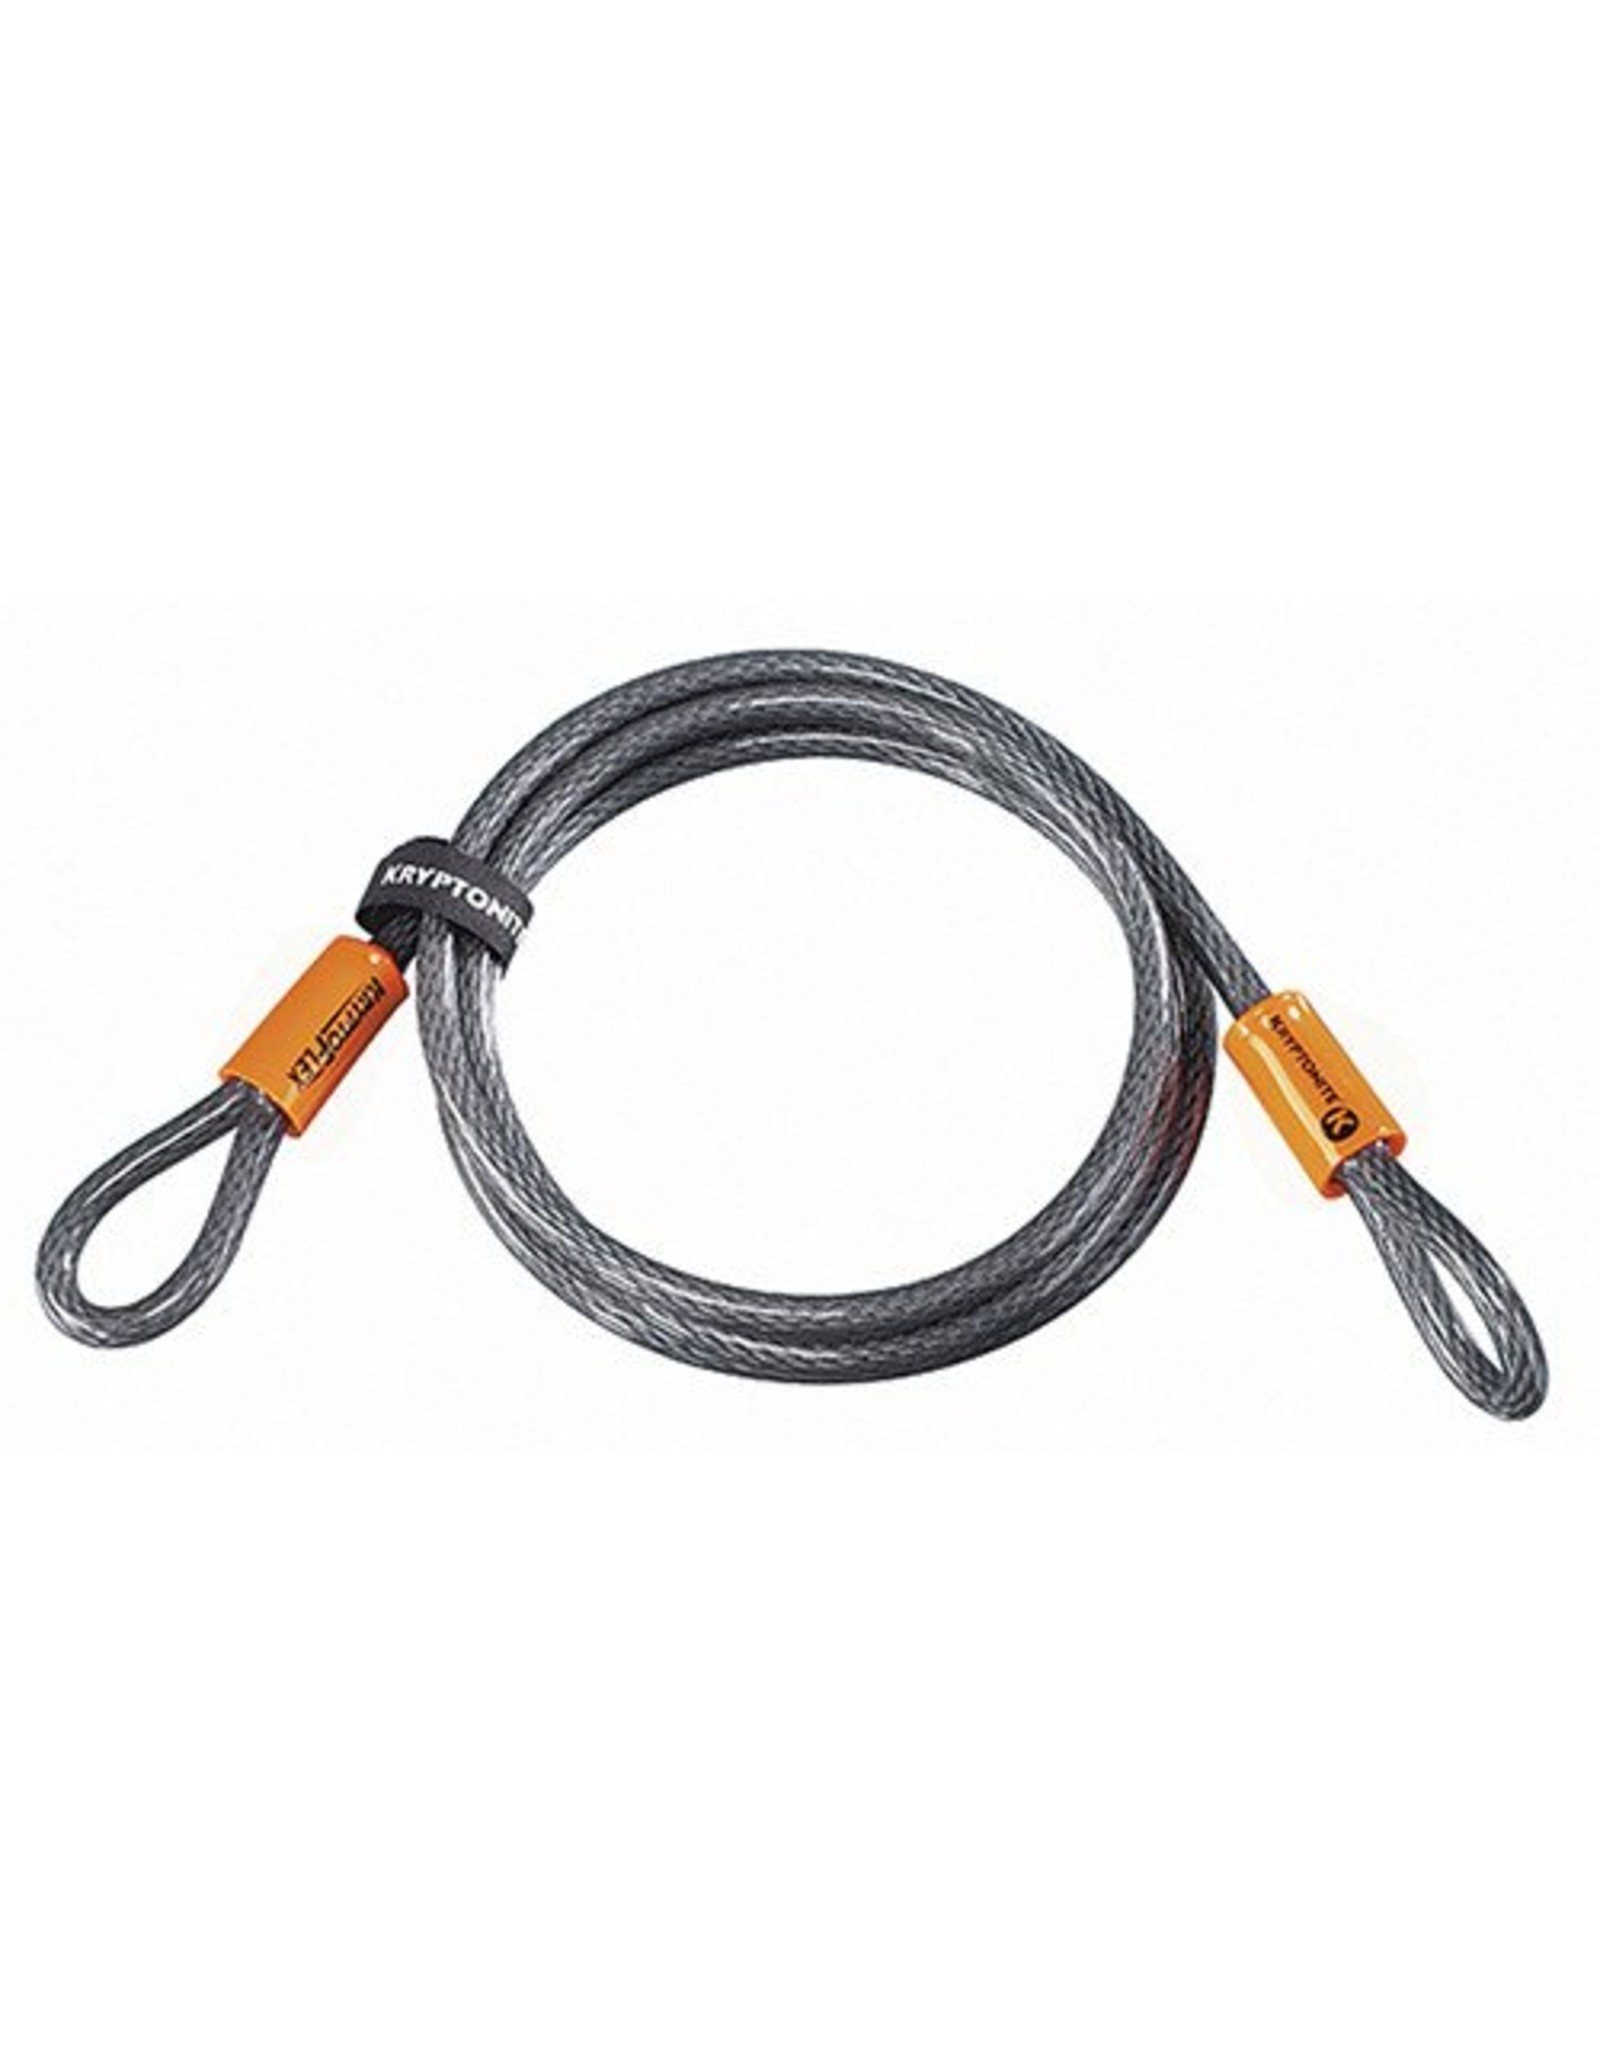 Kryptonite KRYPTOFLEX 1004 CABLE ENROULE